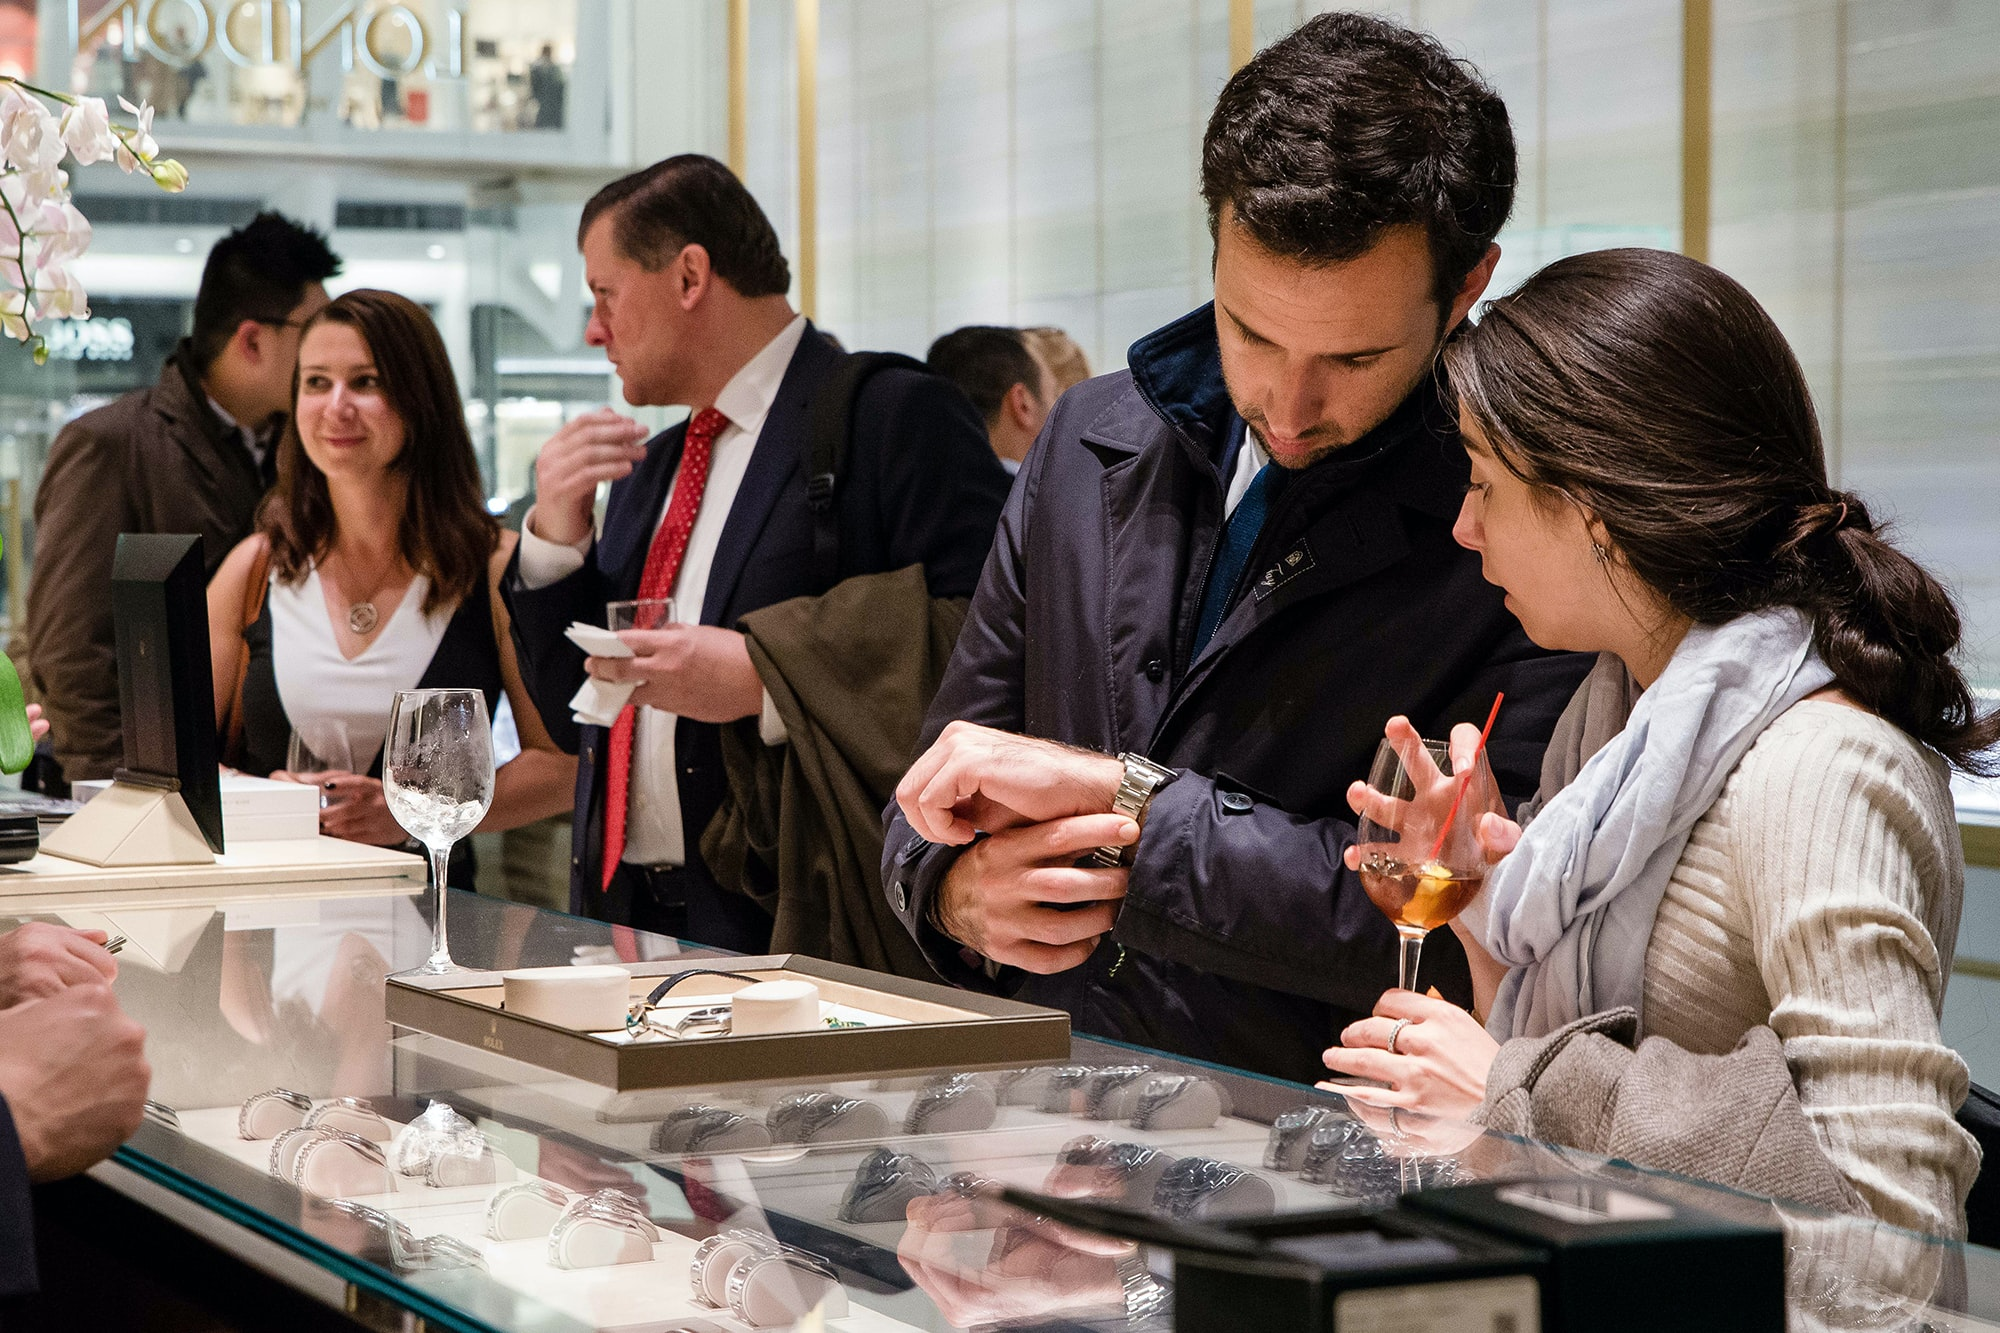 Photo Report: HODINKEE Celebrates London Jewelers' New Store In New York City's Oculus Photo Report: HODINKEE Celebrates London Jewelers' New Store In New York City's Oculus 20161109 LondonJewelersxHodinkee 092